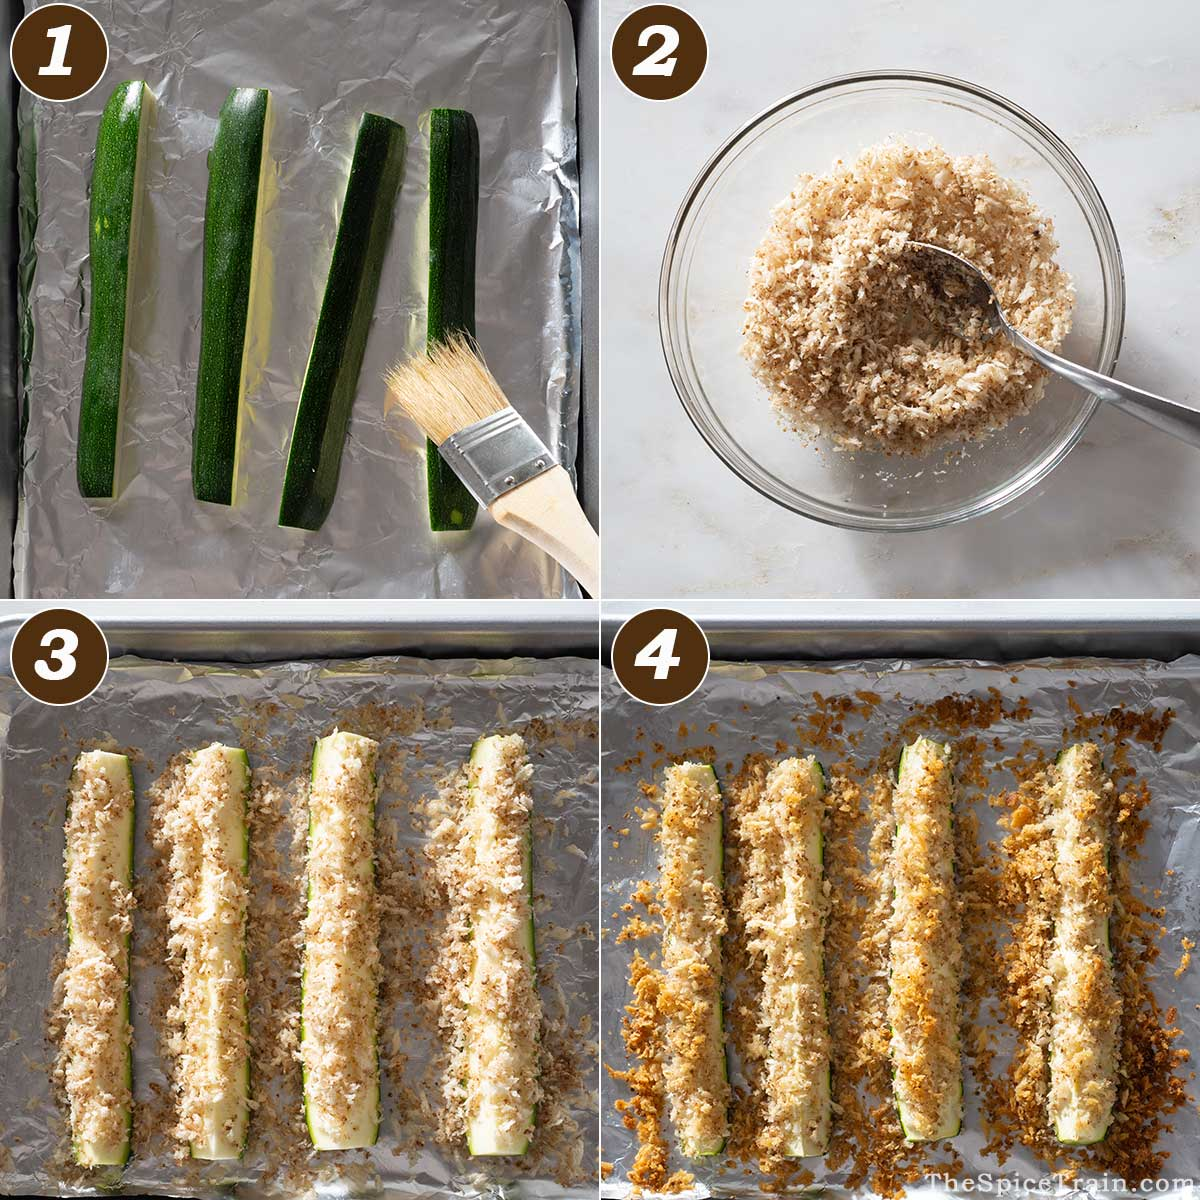 Breaded baked zucchini preparation in four steps.